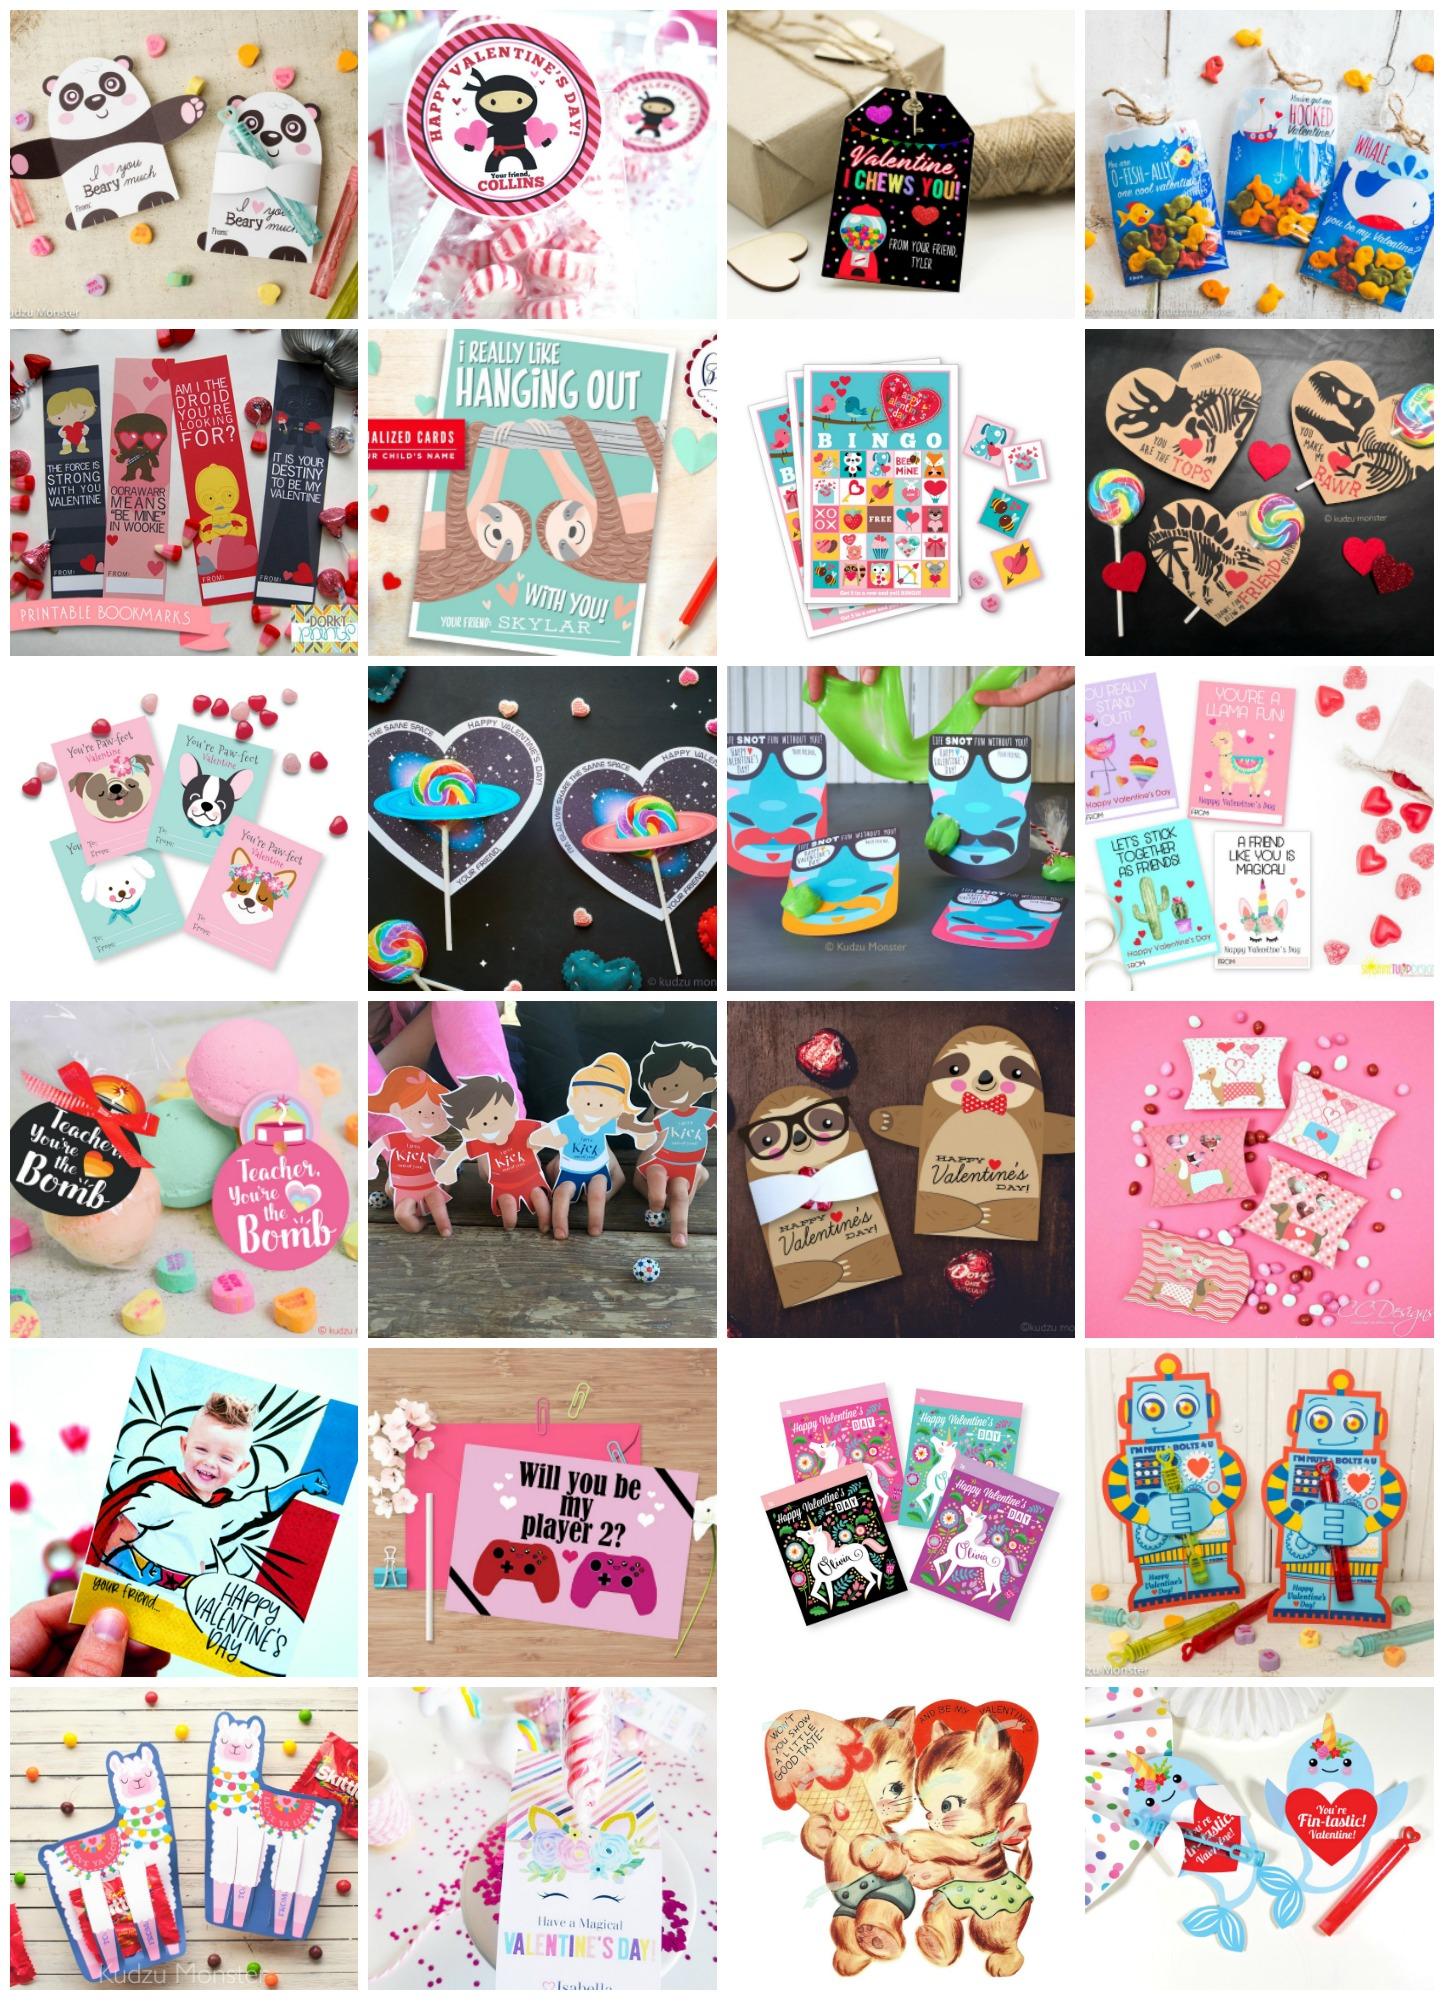 Looking for some last minute Valentine's Day cards? We've pulled together 50+ printable valentines that are so cute and creative! You're going to love them. Whether you are looking for sloths, llamas, otters, superheroes, narwhals, robots, unicorns, gaming or slime we've got an idea for you! Make easy handmade Valentine's Day Cards with these printables! #ValentinesDay #Printable #ValentineCard #Handmade